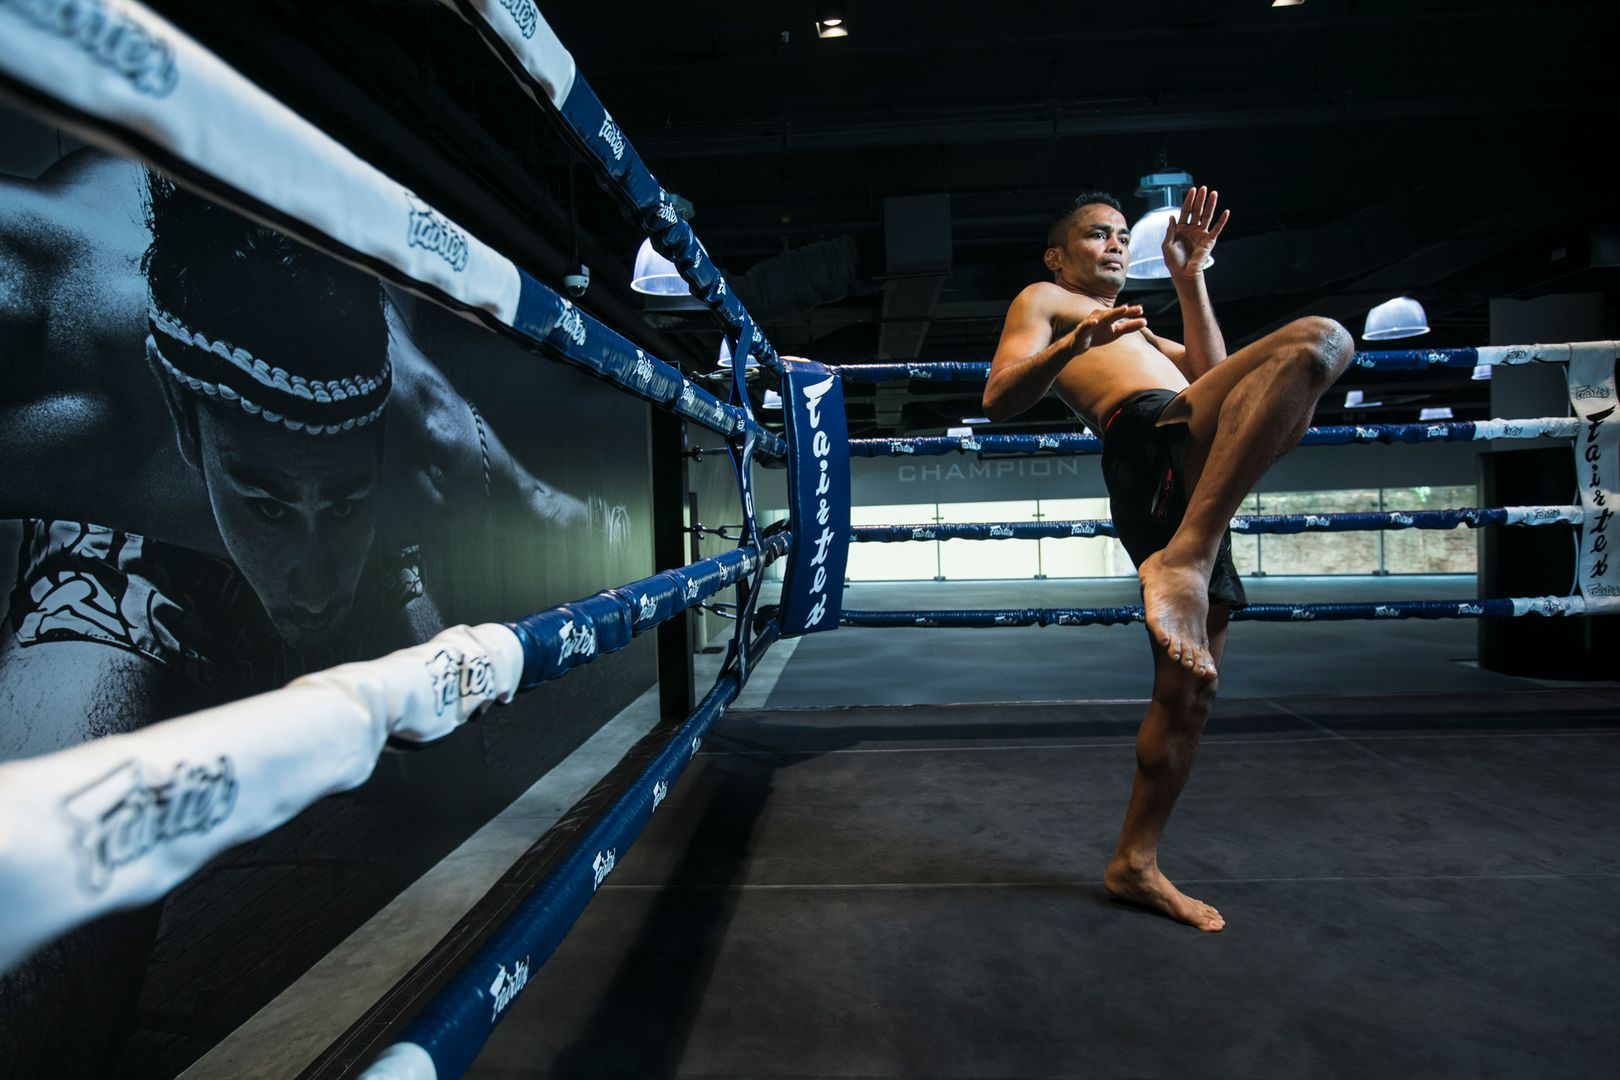 Former ONE Strawweight World Champion Dejdamrong Sor Amnuaysirichoke shadow boxes and throws an air knee